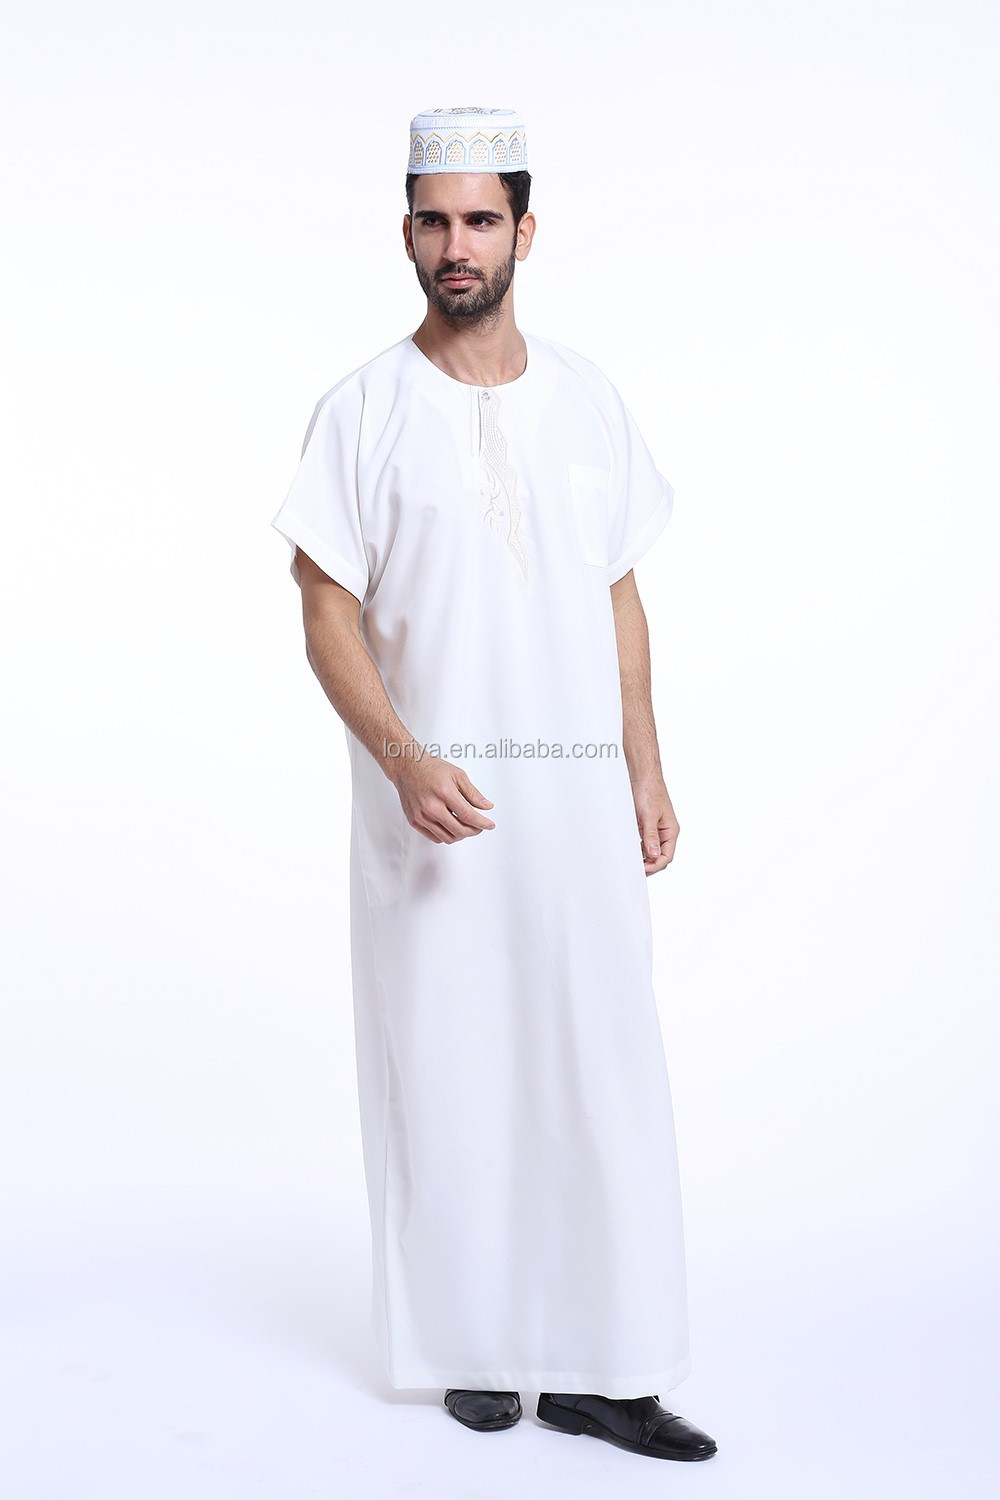 Simple design men jubah islamic clothing men's abaya